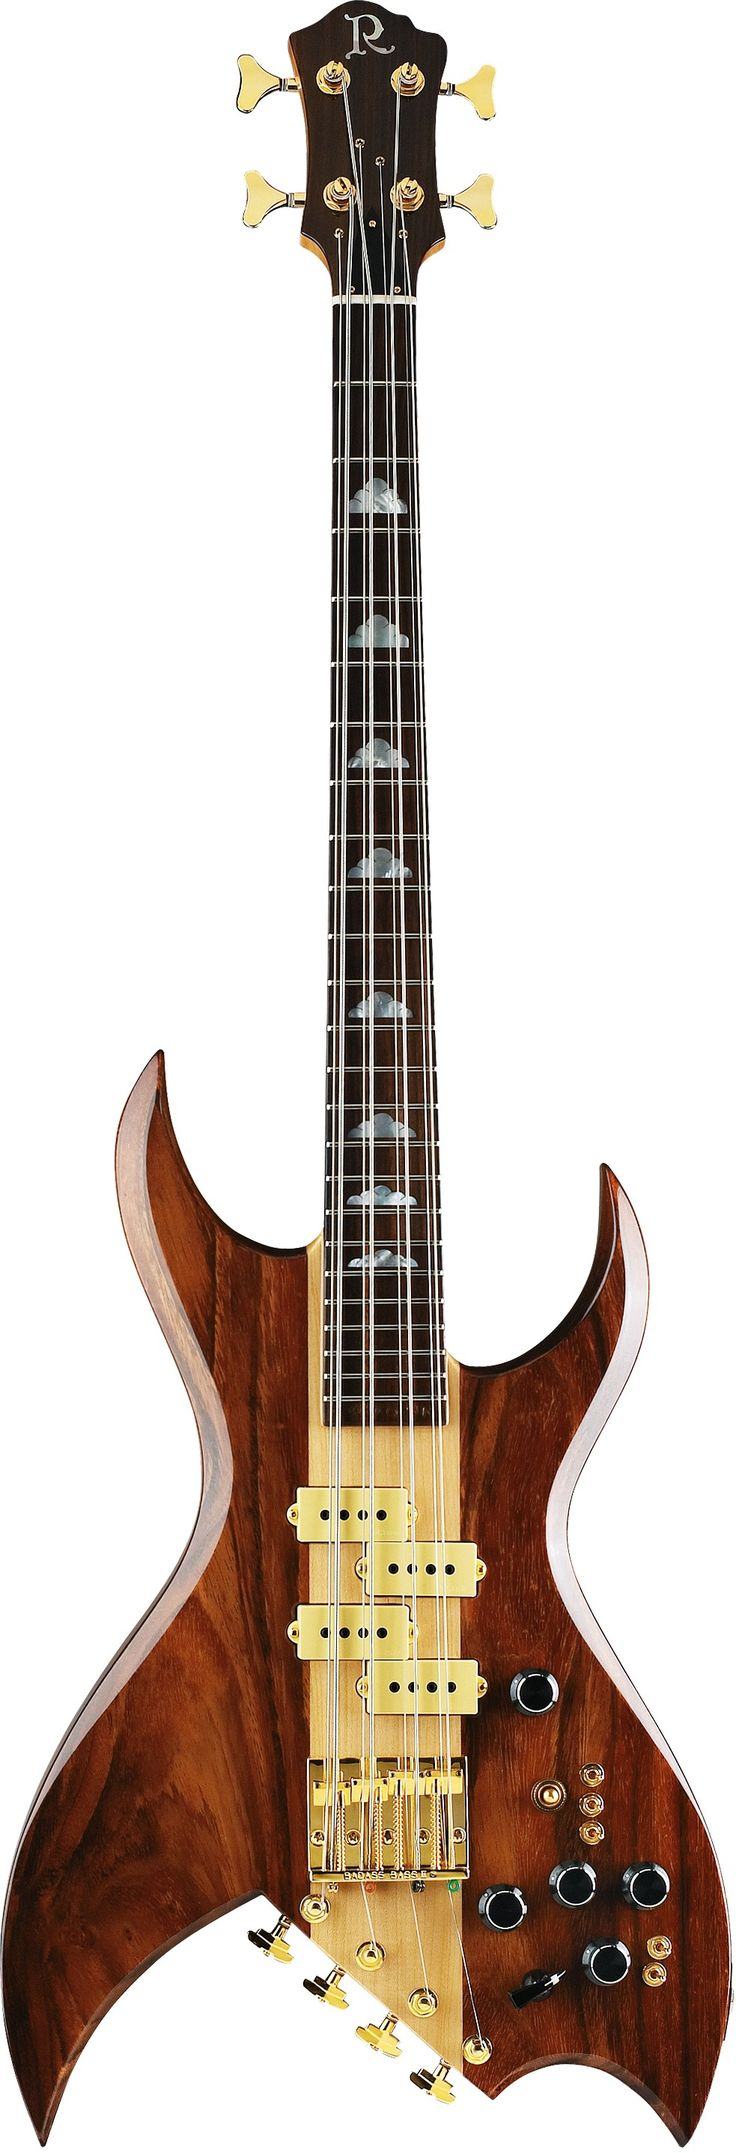 B.C. Rich 8-string bass - enlarge to see how 4 small tuners work. RESEARCH #DdO:) - https://www.pinterest.com/DianaDeeOsborne/basses-of-life/ - BASSes OF LIFE. Rare 1981 1981 Natural model, with two woods. $3,995 asking price at Reverb, 2014. Made in United States.  Manufacturer of guitars & bass guitars founded by Bernardo Chavez Rico in 1969. Currently, most B.C. Rich guitars are manufactured in Asia, but luthiers of the company's custom shop continue to hand-make instruments here in USA.